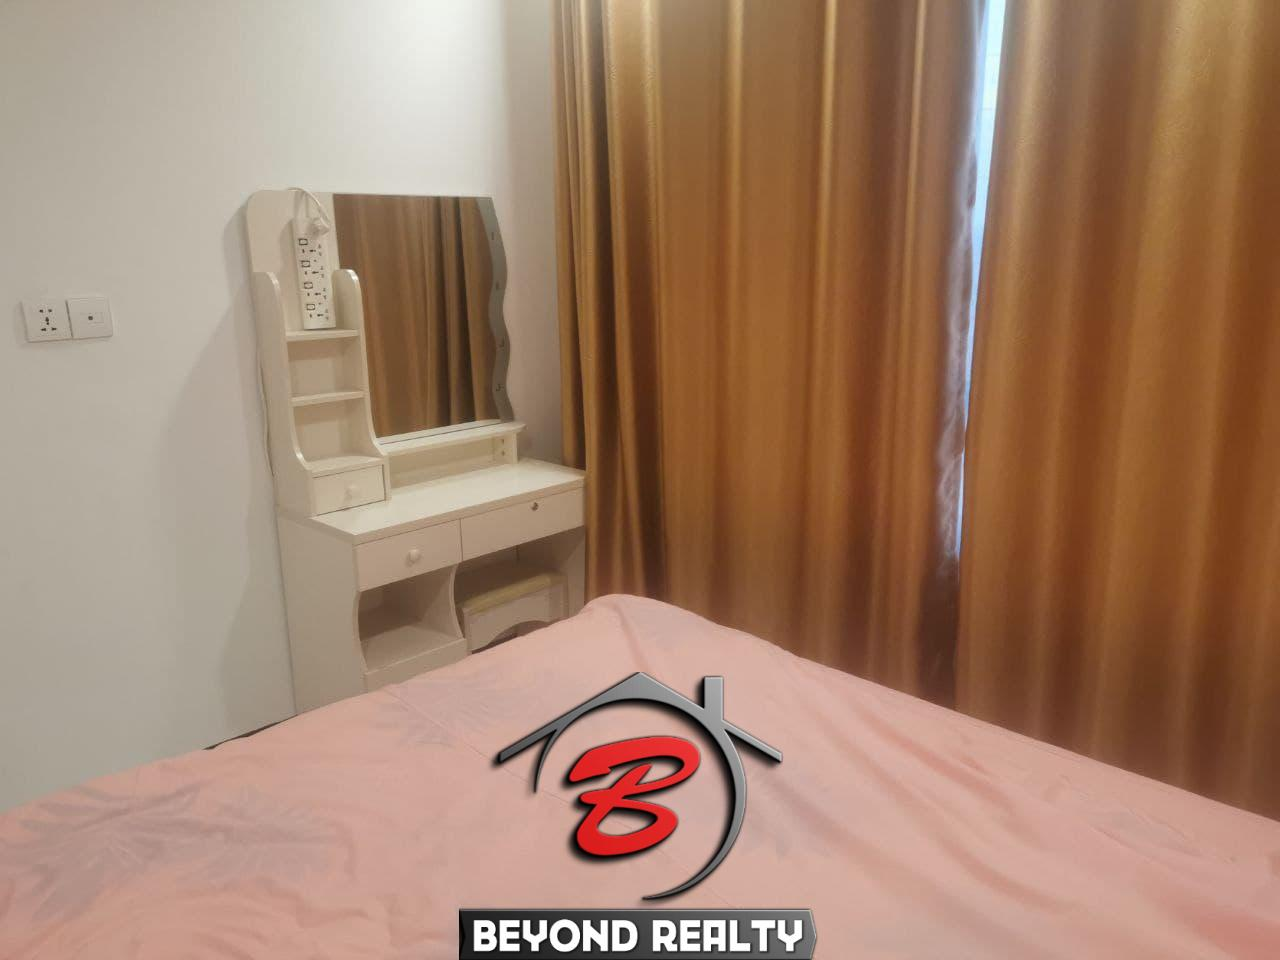 the bedroom of the 1-bedroom serviced condo for rent in Boeung Tompun Phnom Penh Cambodia